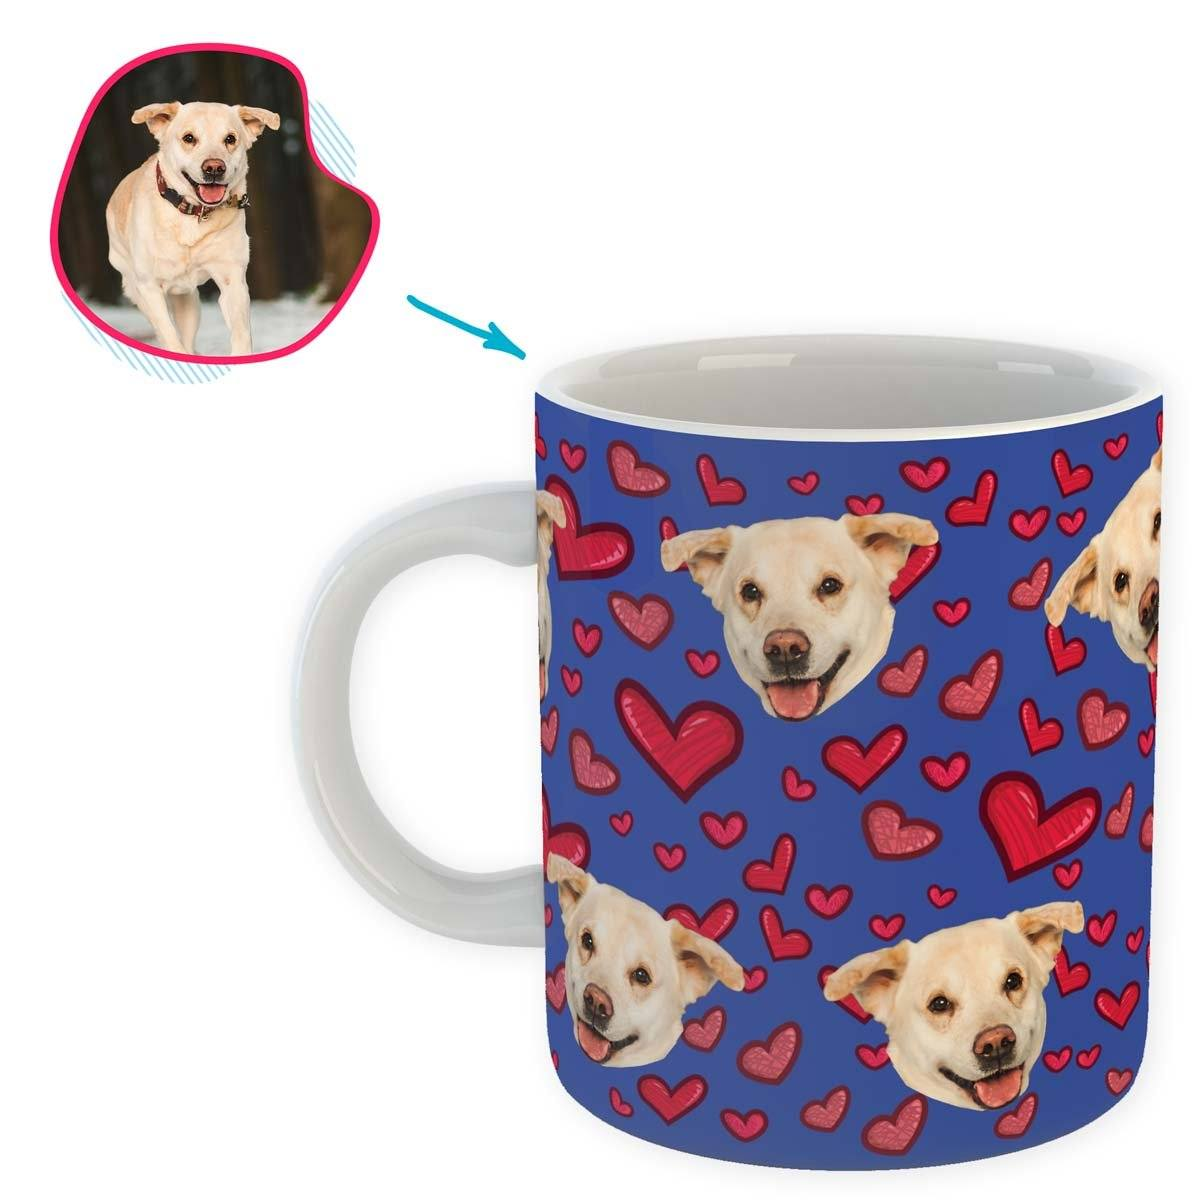 darkblue Heart mug personalized with photo of face printed on it